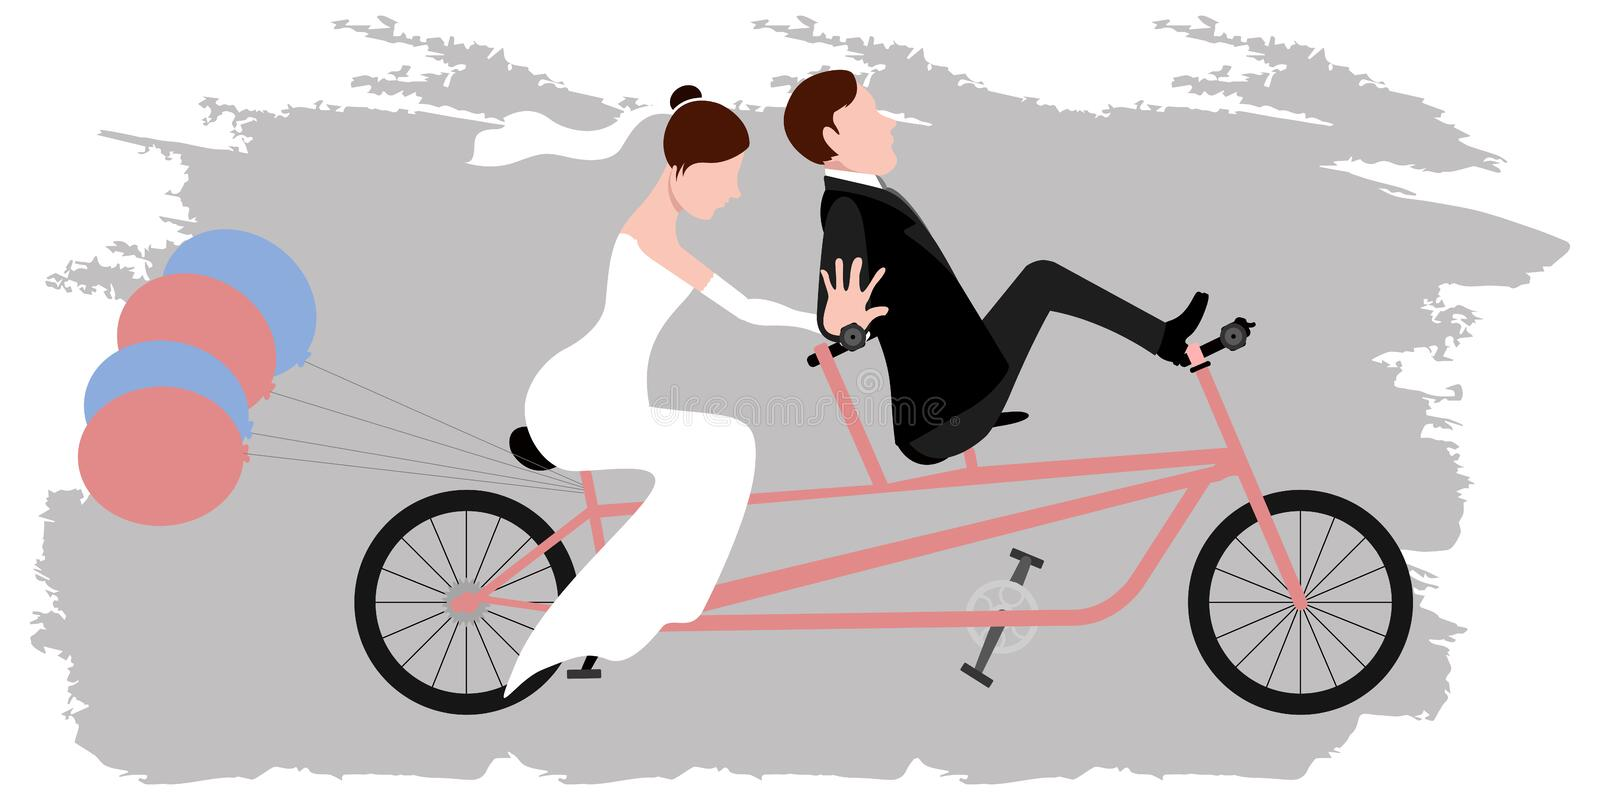 Groom and bride on a bicycle. Just married couple vector illustration